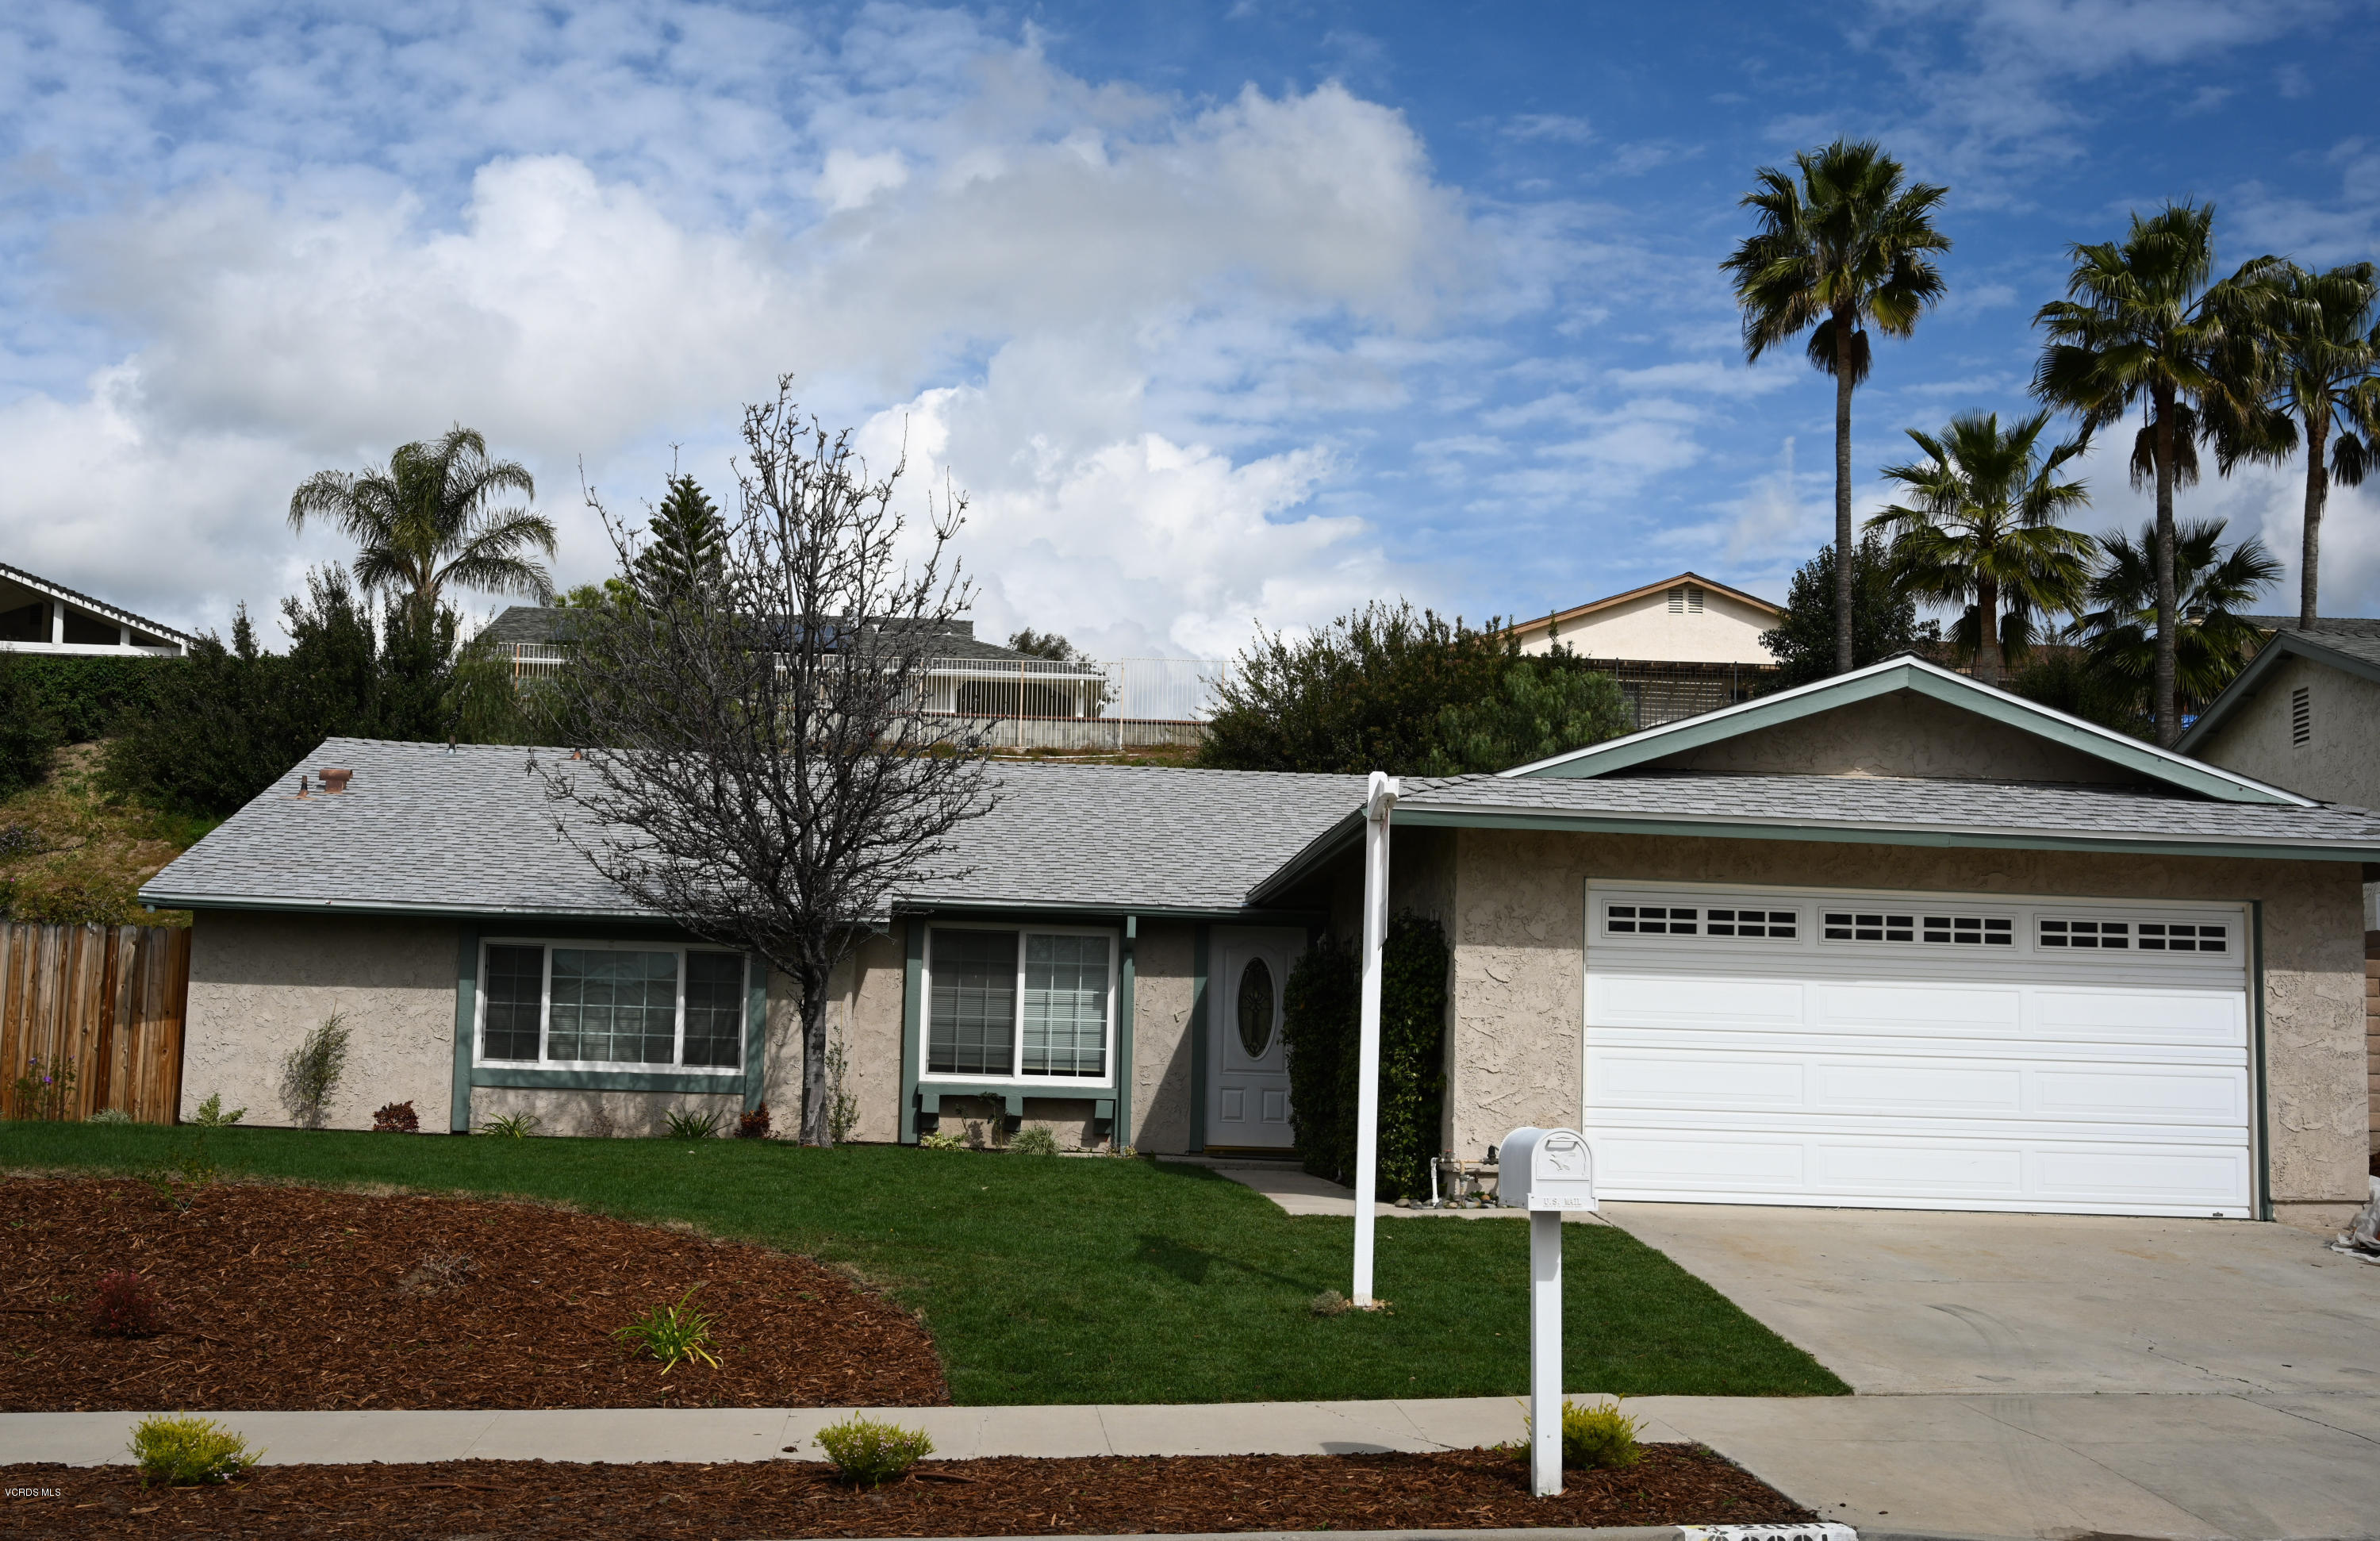 2091 Booth Street, Simi Valley, CA 93065